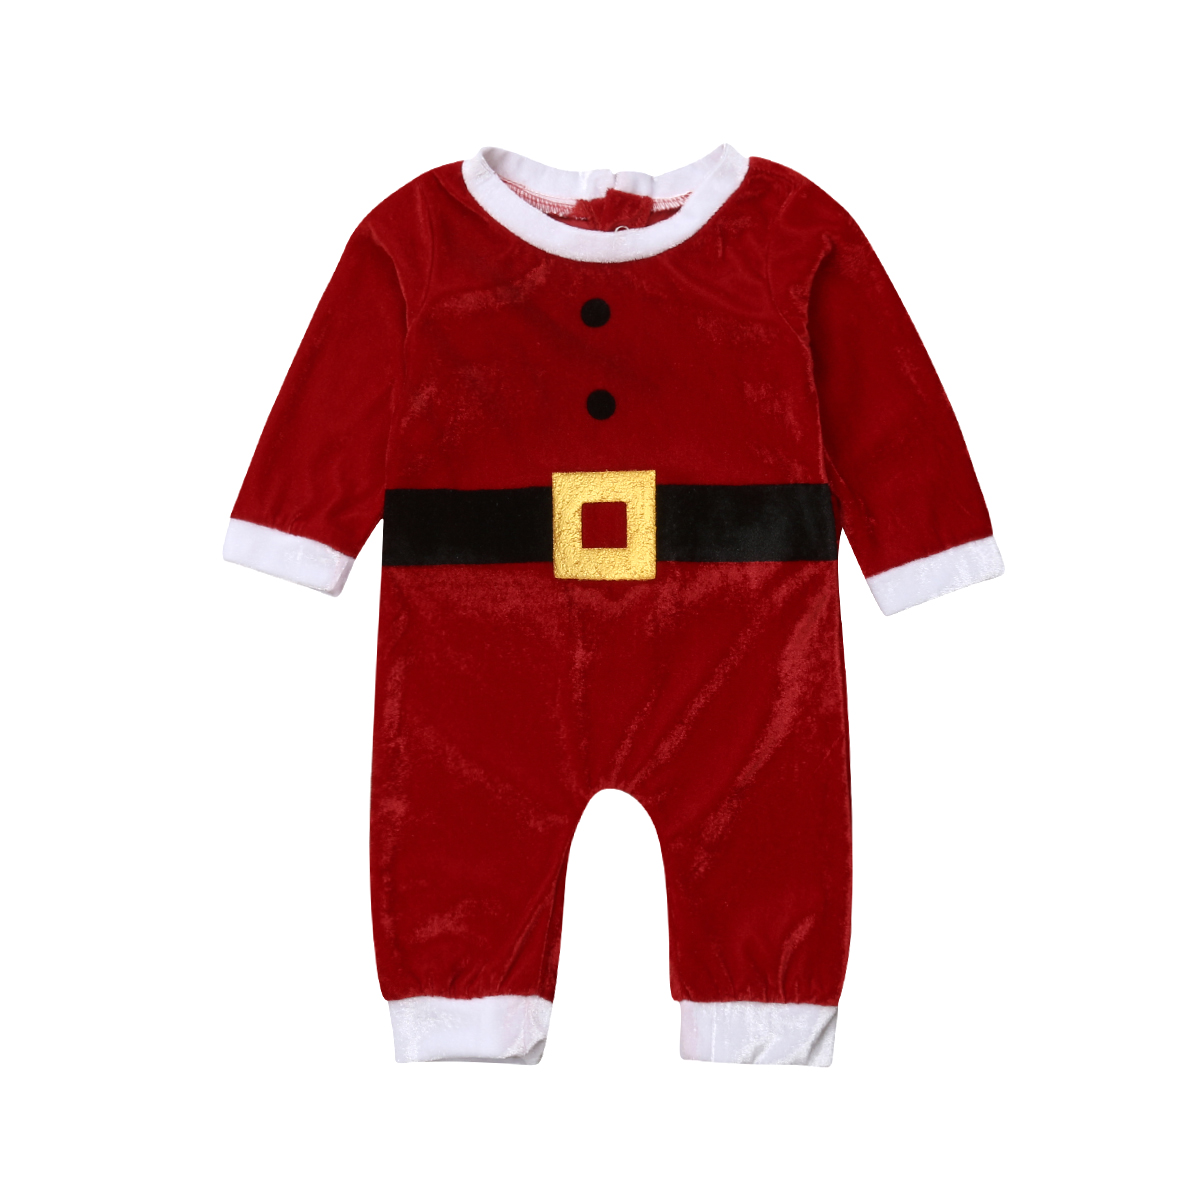 Cartoon Santa Claus Costumes For Newborn Baby Boys Girls Christmas Infant Baby Boys Romper Jumpsuit Play Suit Xmas Party Clothes